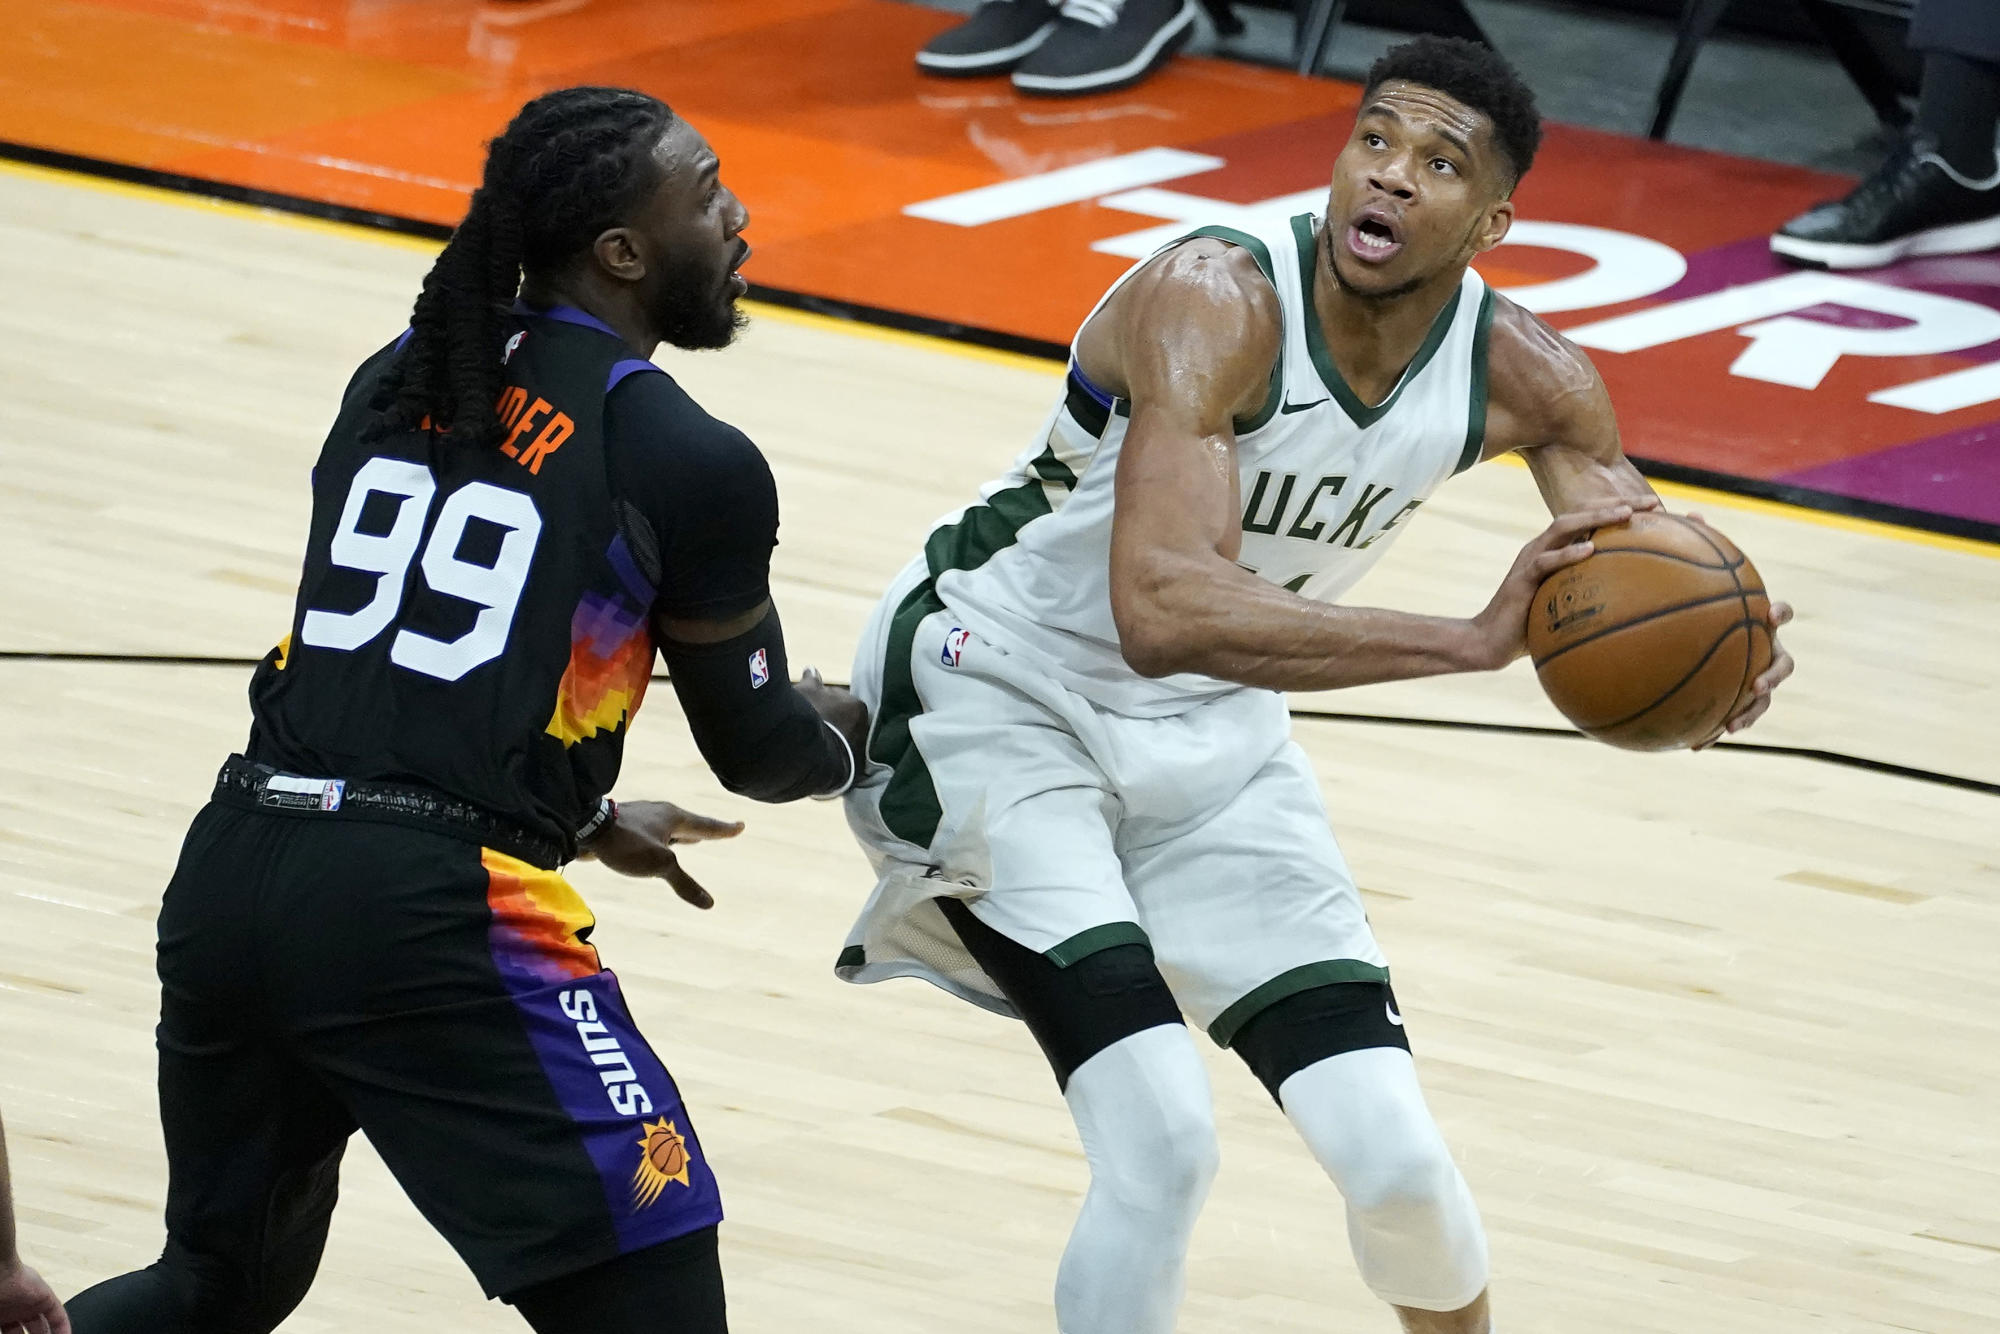 Suns rally to beat Bucks 125-124 despite Giannis' 47 points